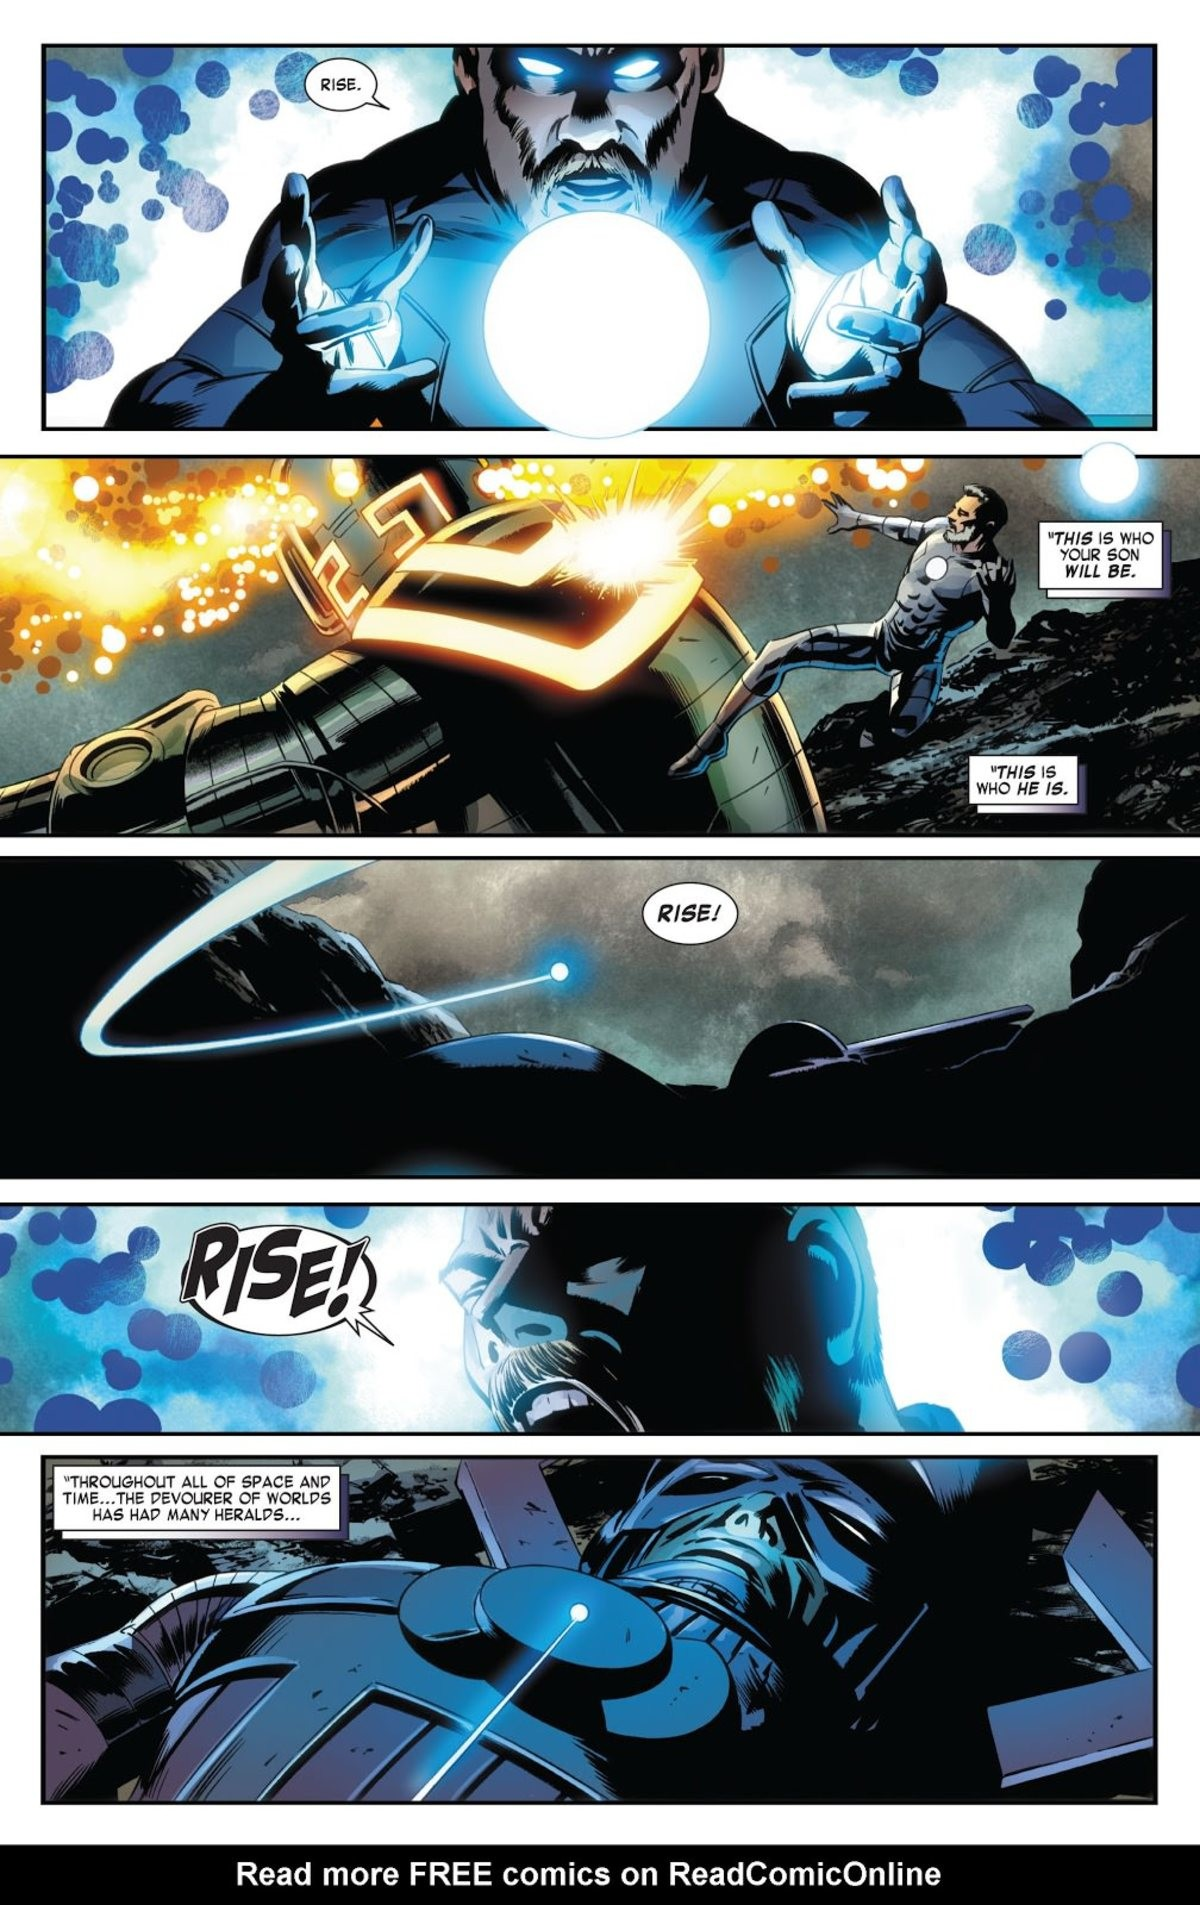 """Galactus becomes a herald. . WHO HE IS. THROUGHOUT ALL """" SPACE AN!' THE DEVOURER OF WORLDS HAS HAD MANY ... Read more FREE comics on. Oh yeah this scene and story are cool. Franklin Richard showing the Celestials whose boss and making Galactus his bitch."""